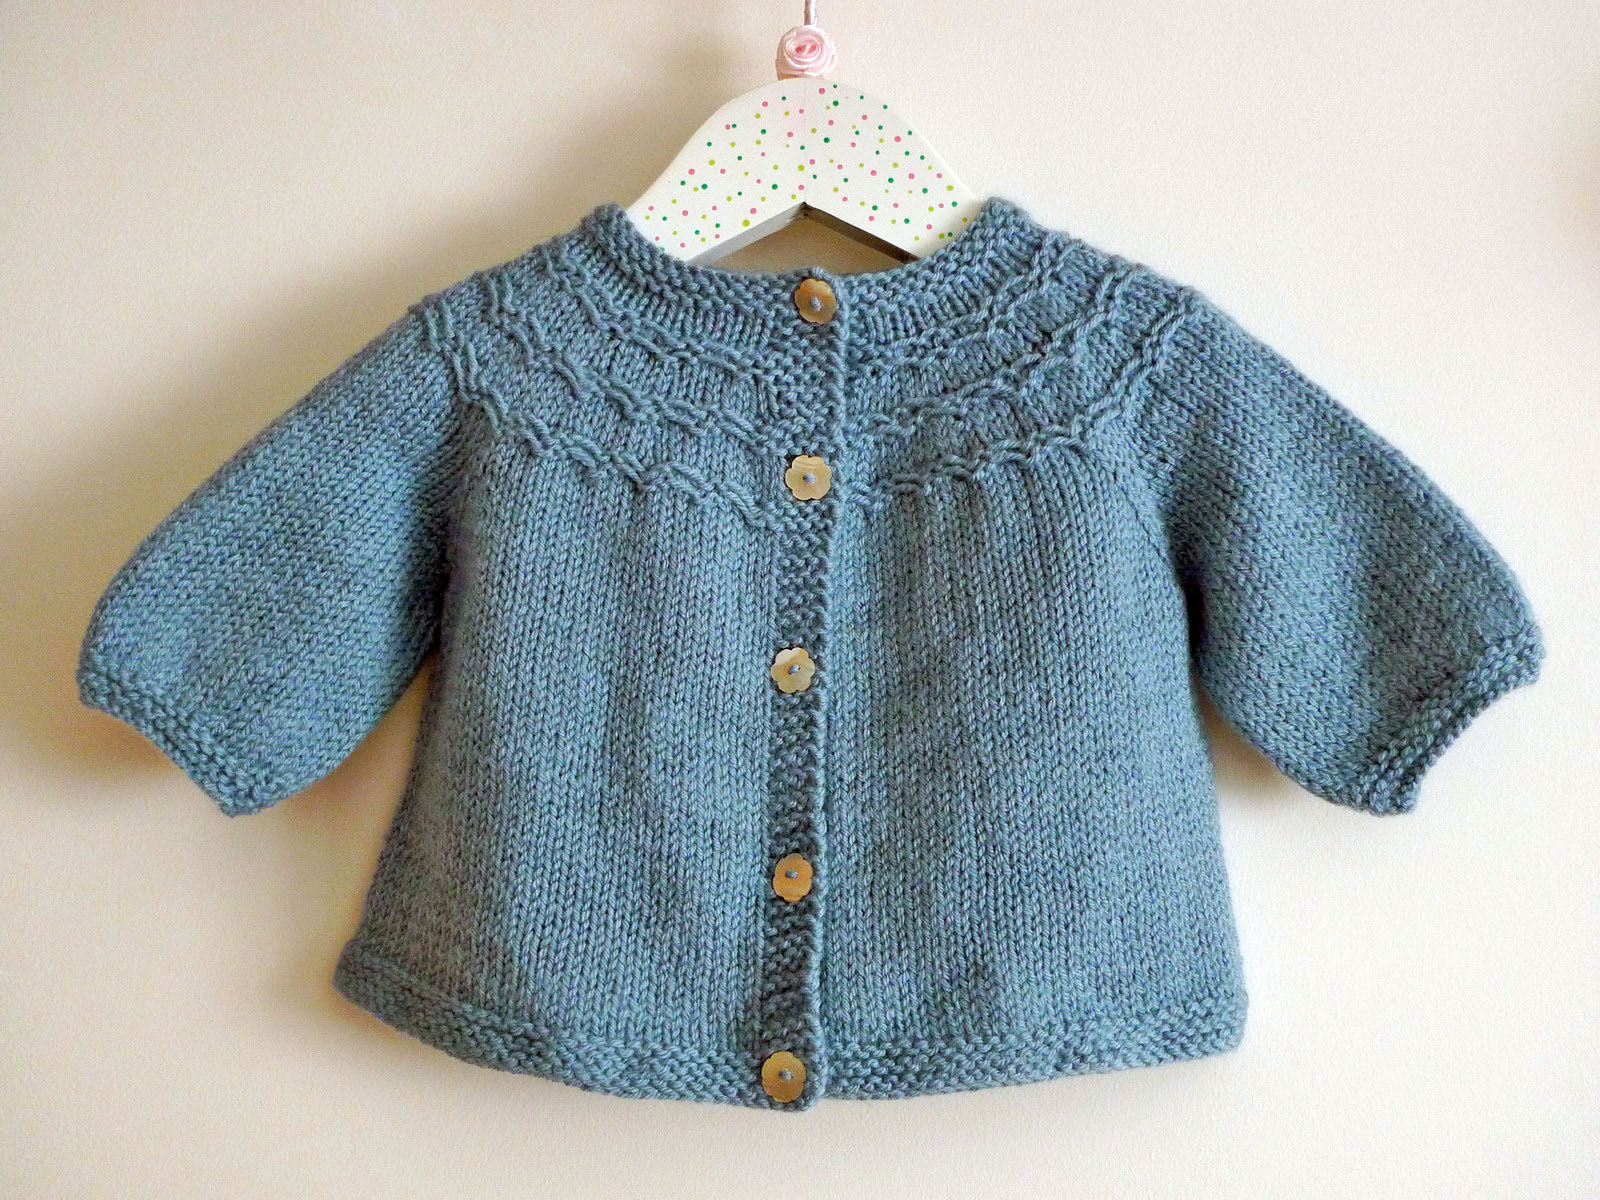 Chocolate a chuva: smocked baby cardi + cabled booties